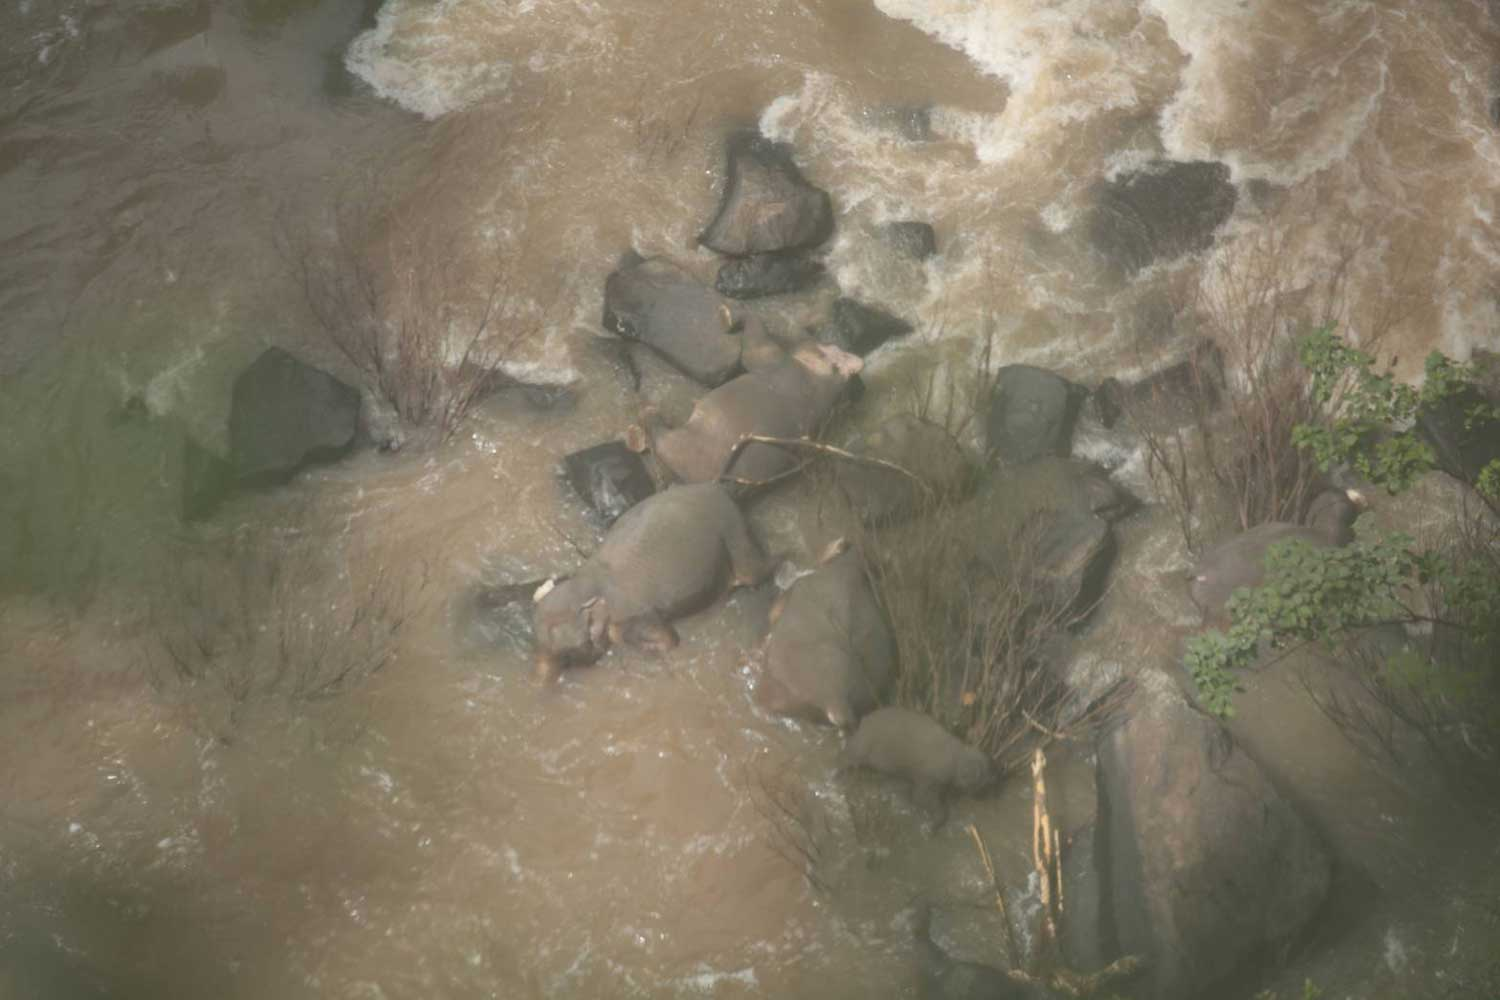 The bodies of six elephants are seen at the base of Haew Narok waterfall in Khao Yai National Park on Saturday. (Supplied photo)